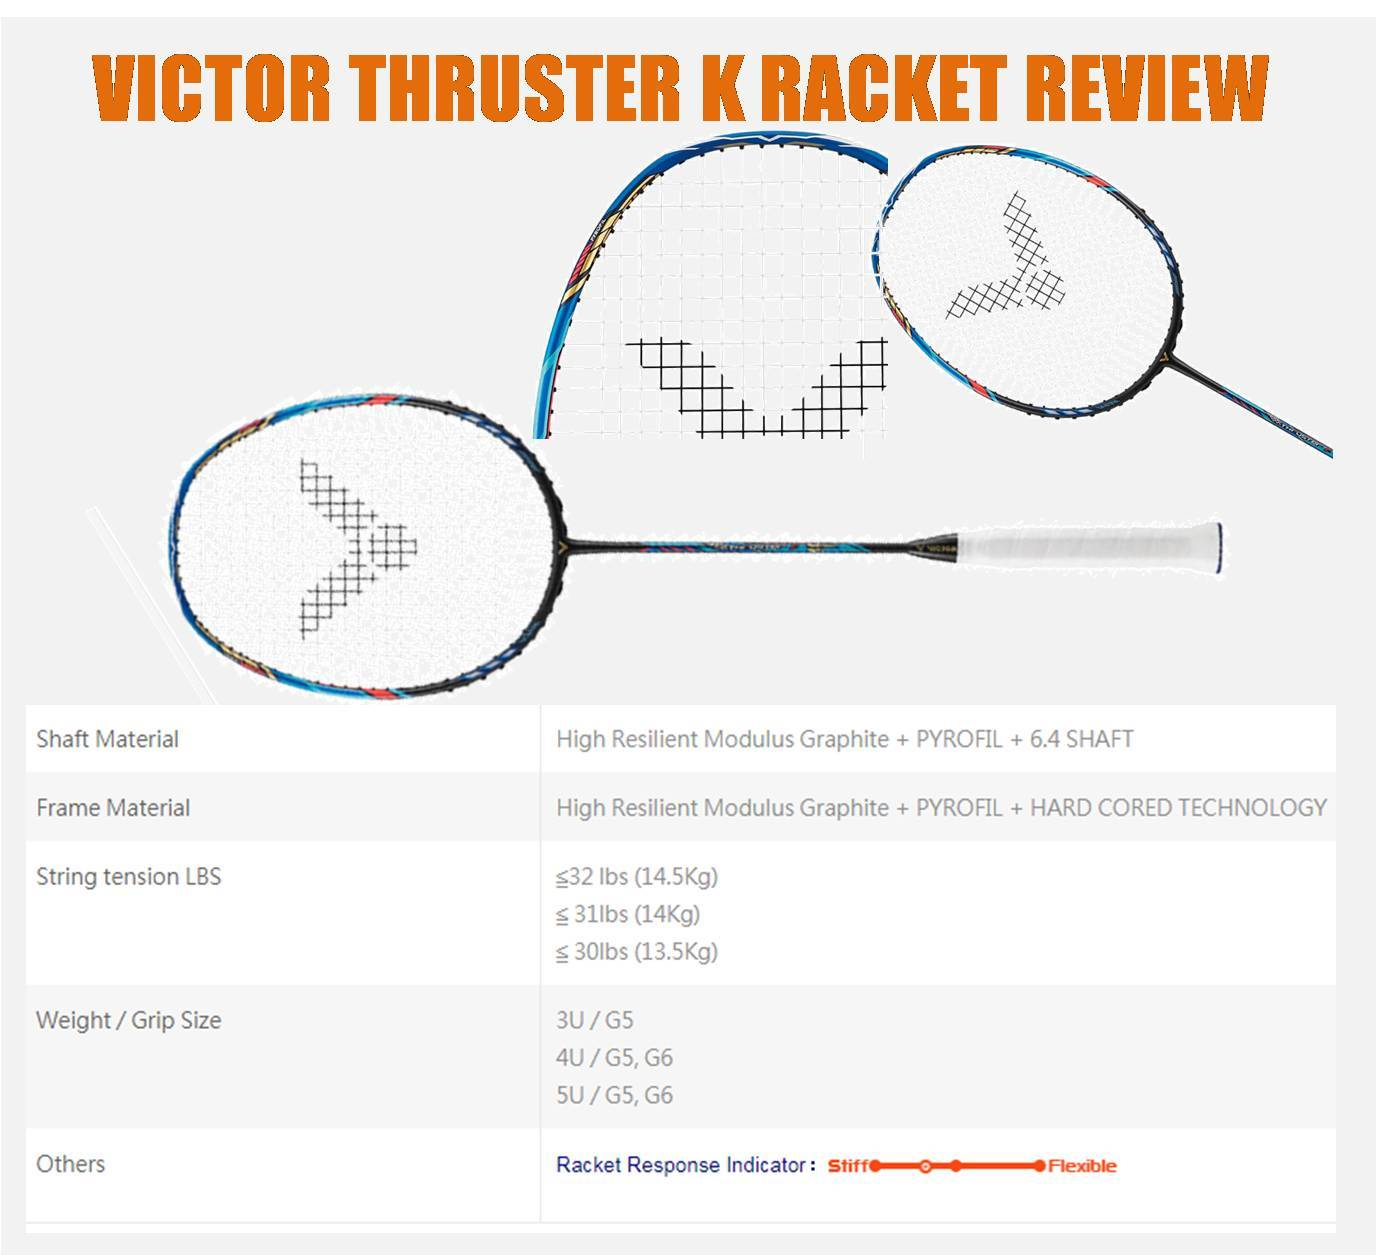 VICTOR_THRUSTER_K_RACKET_REVIEW_2018.jpg